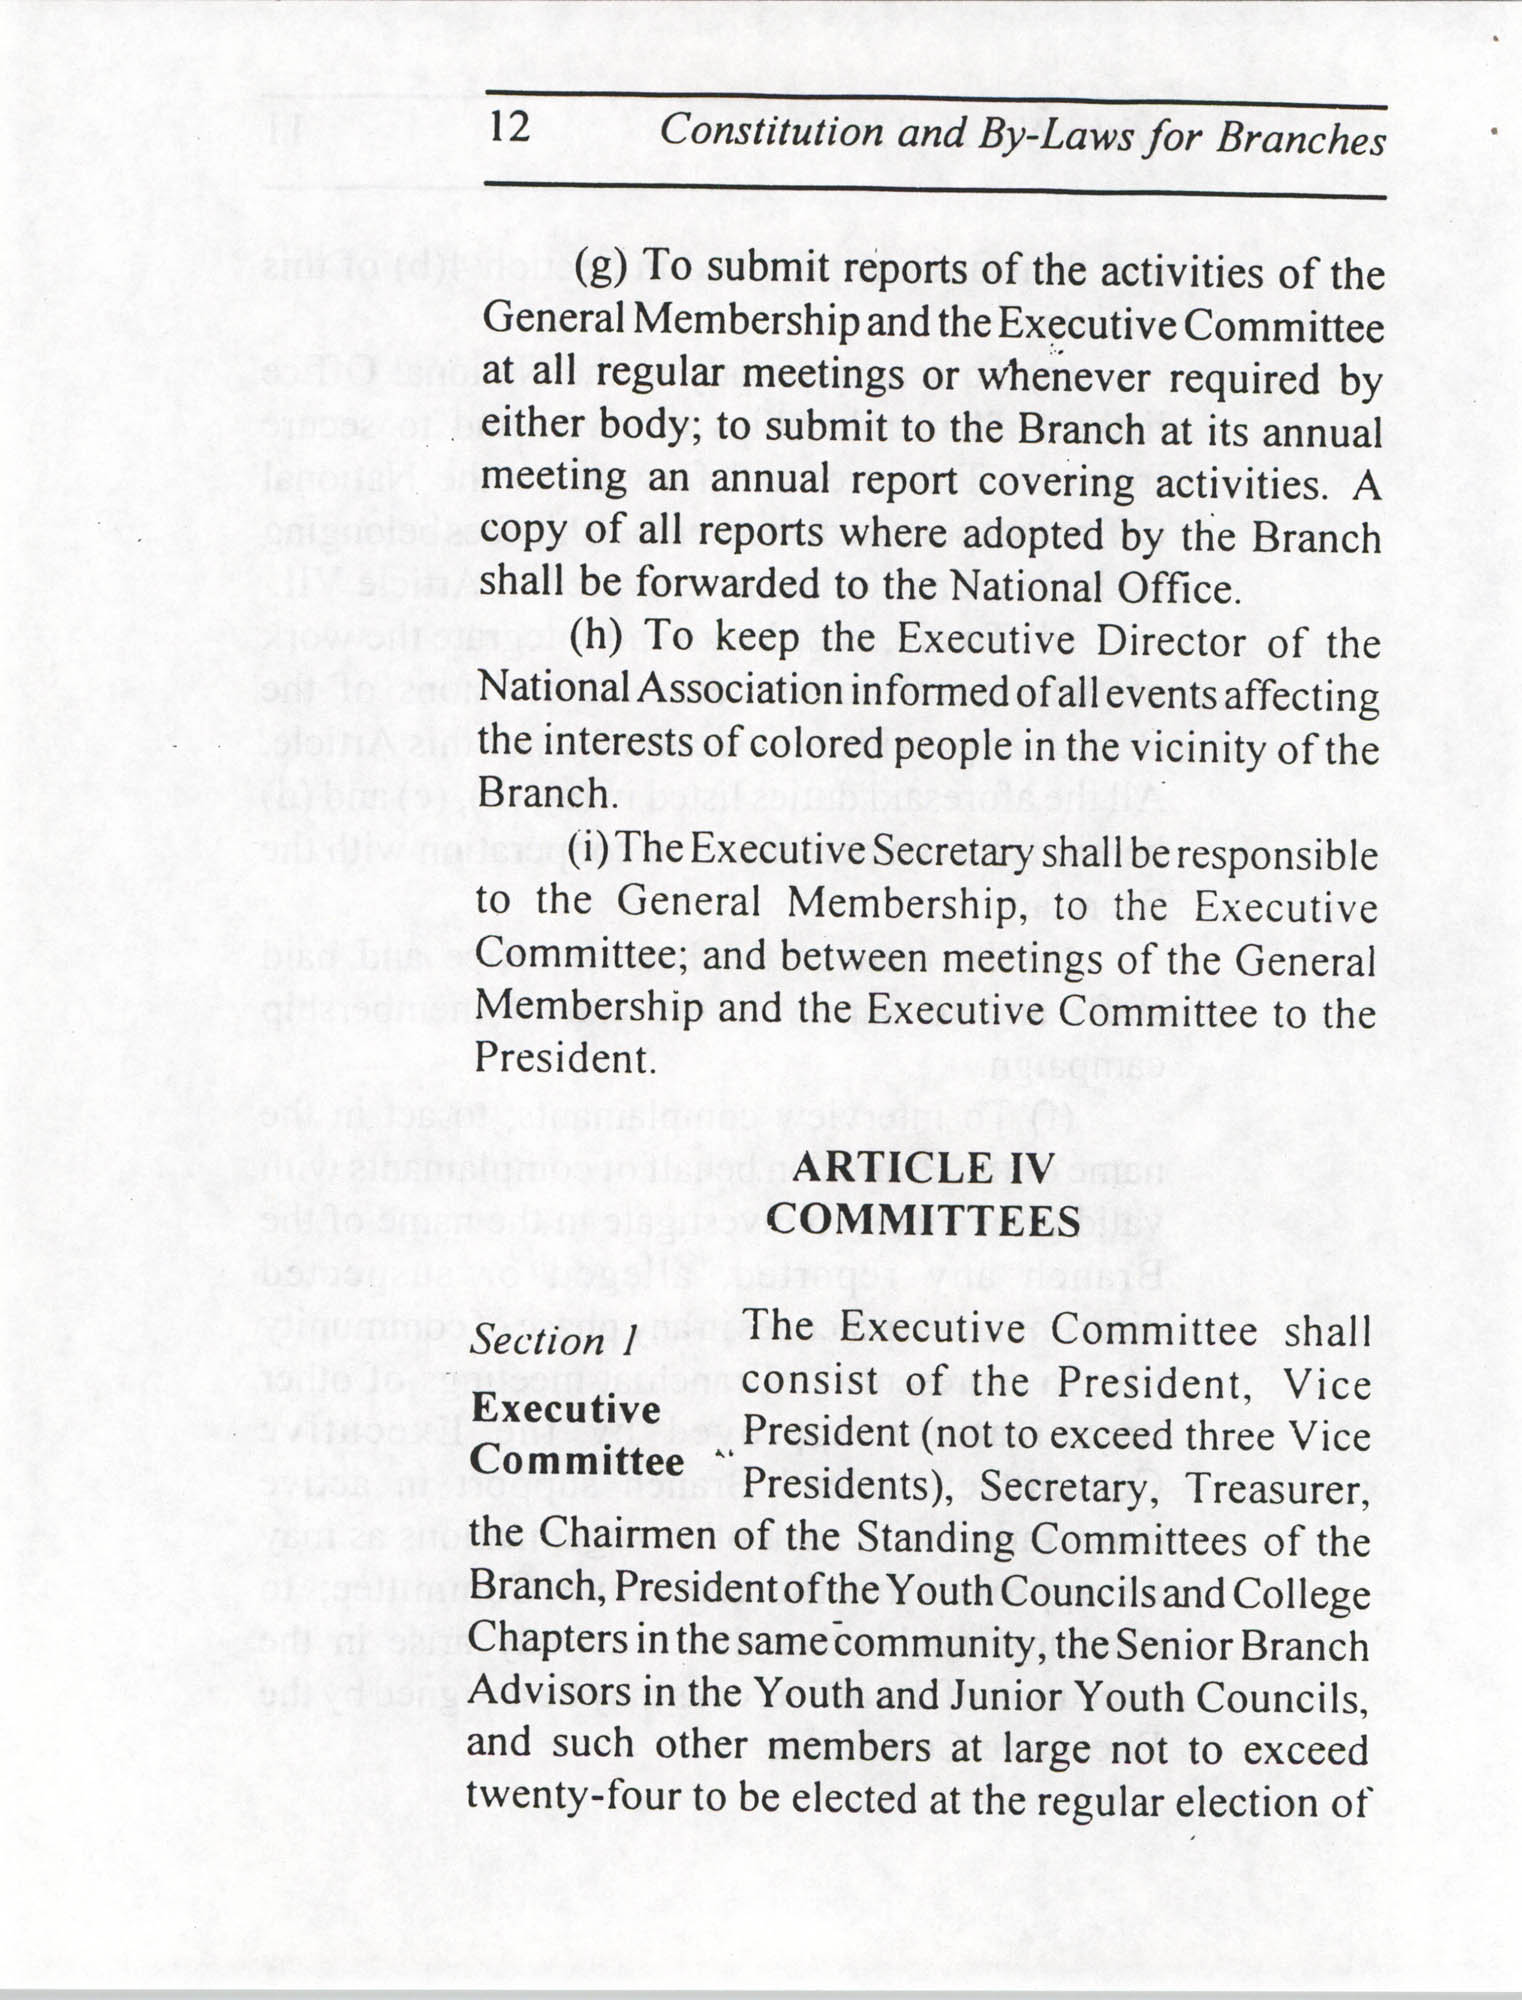 Constitution and By-Laws for Branches of the NAACP, July 1994, Page 12